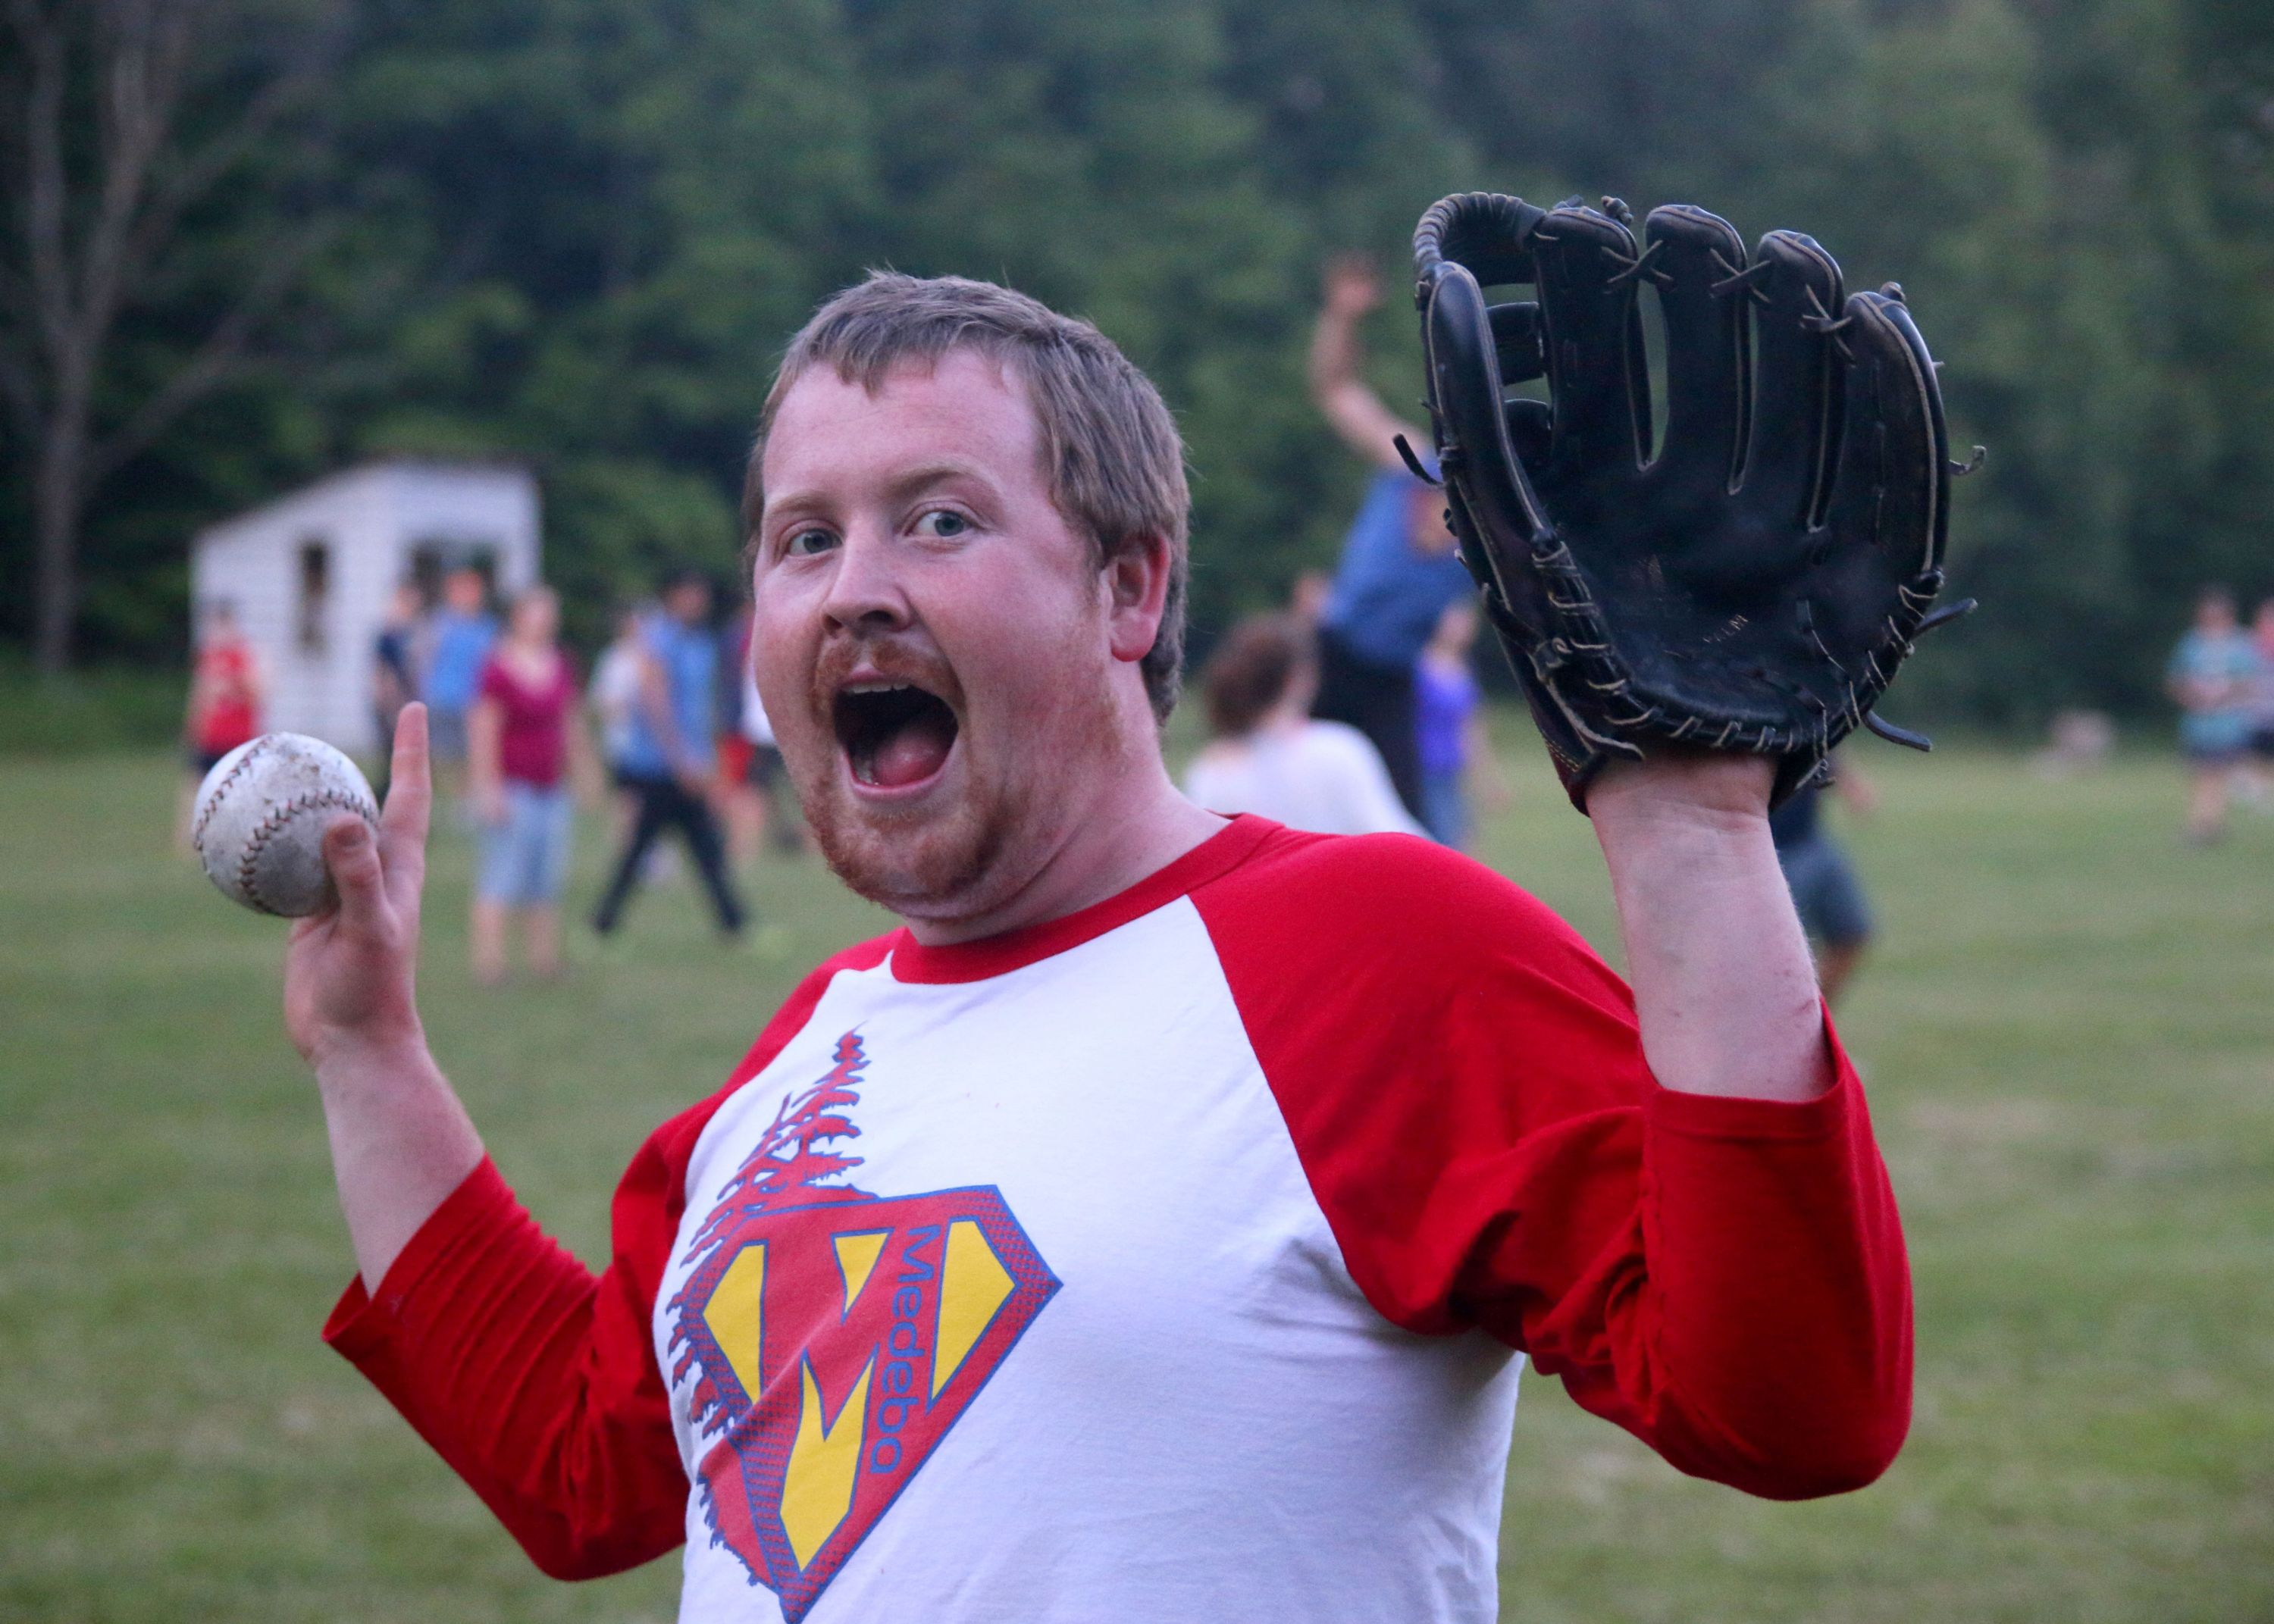 Staff member playing baseball outside at Christian Adventure Summer Camp